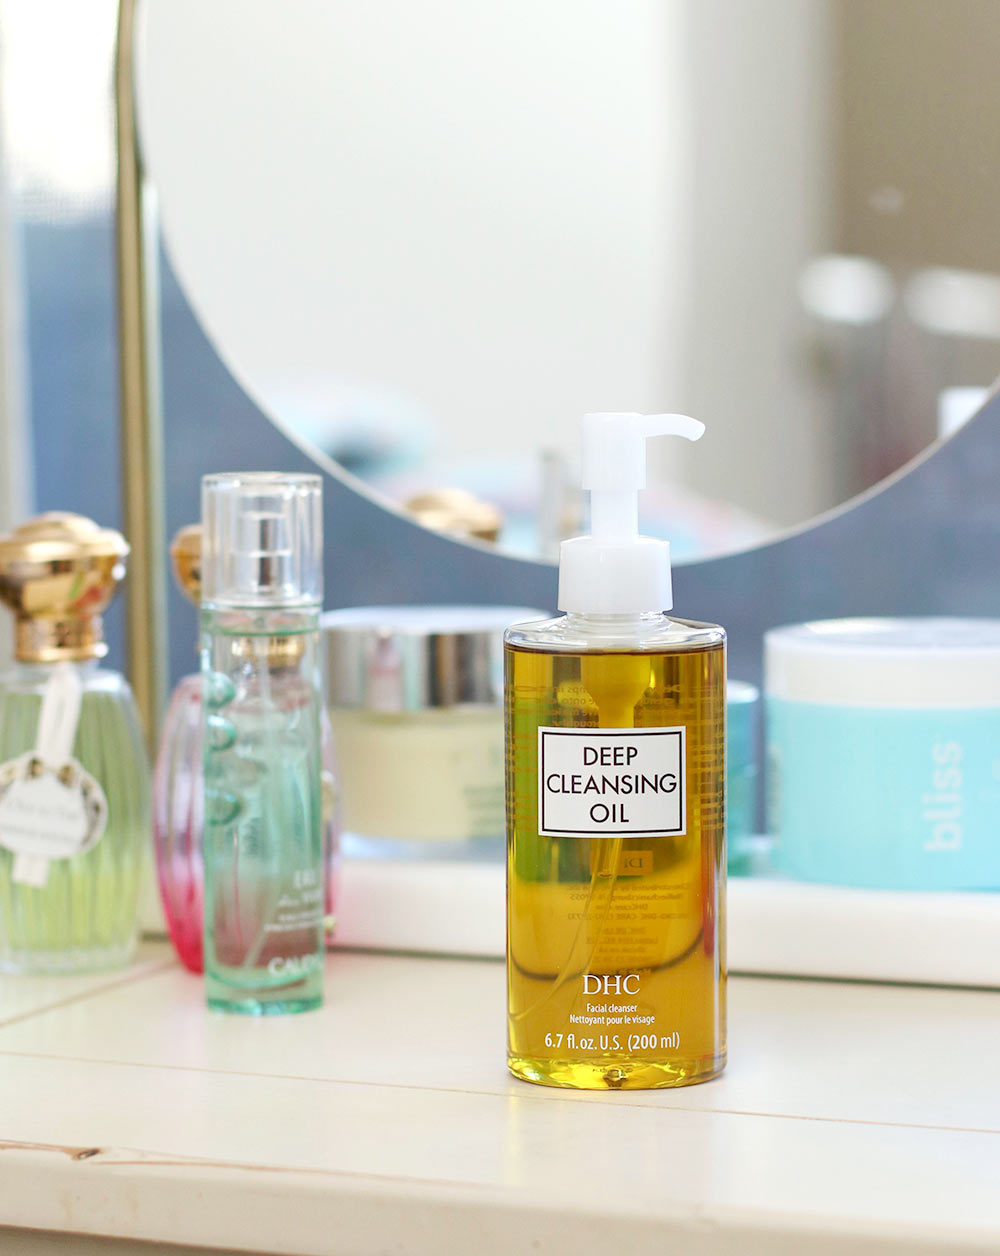 Deep Cleansing Oil by DHC #5